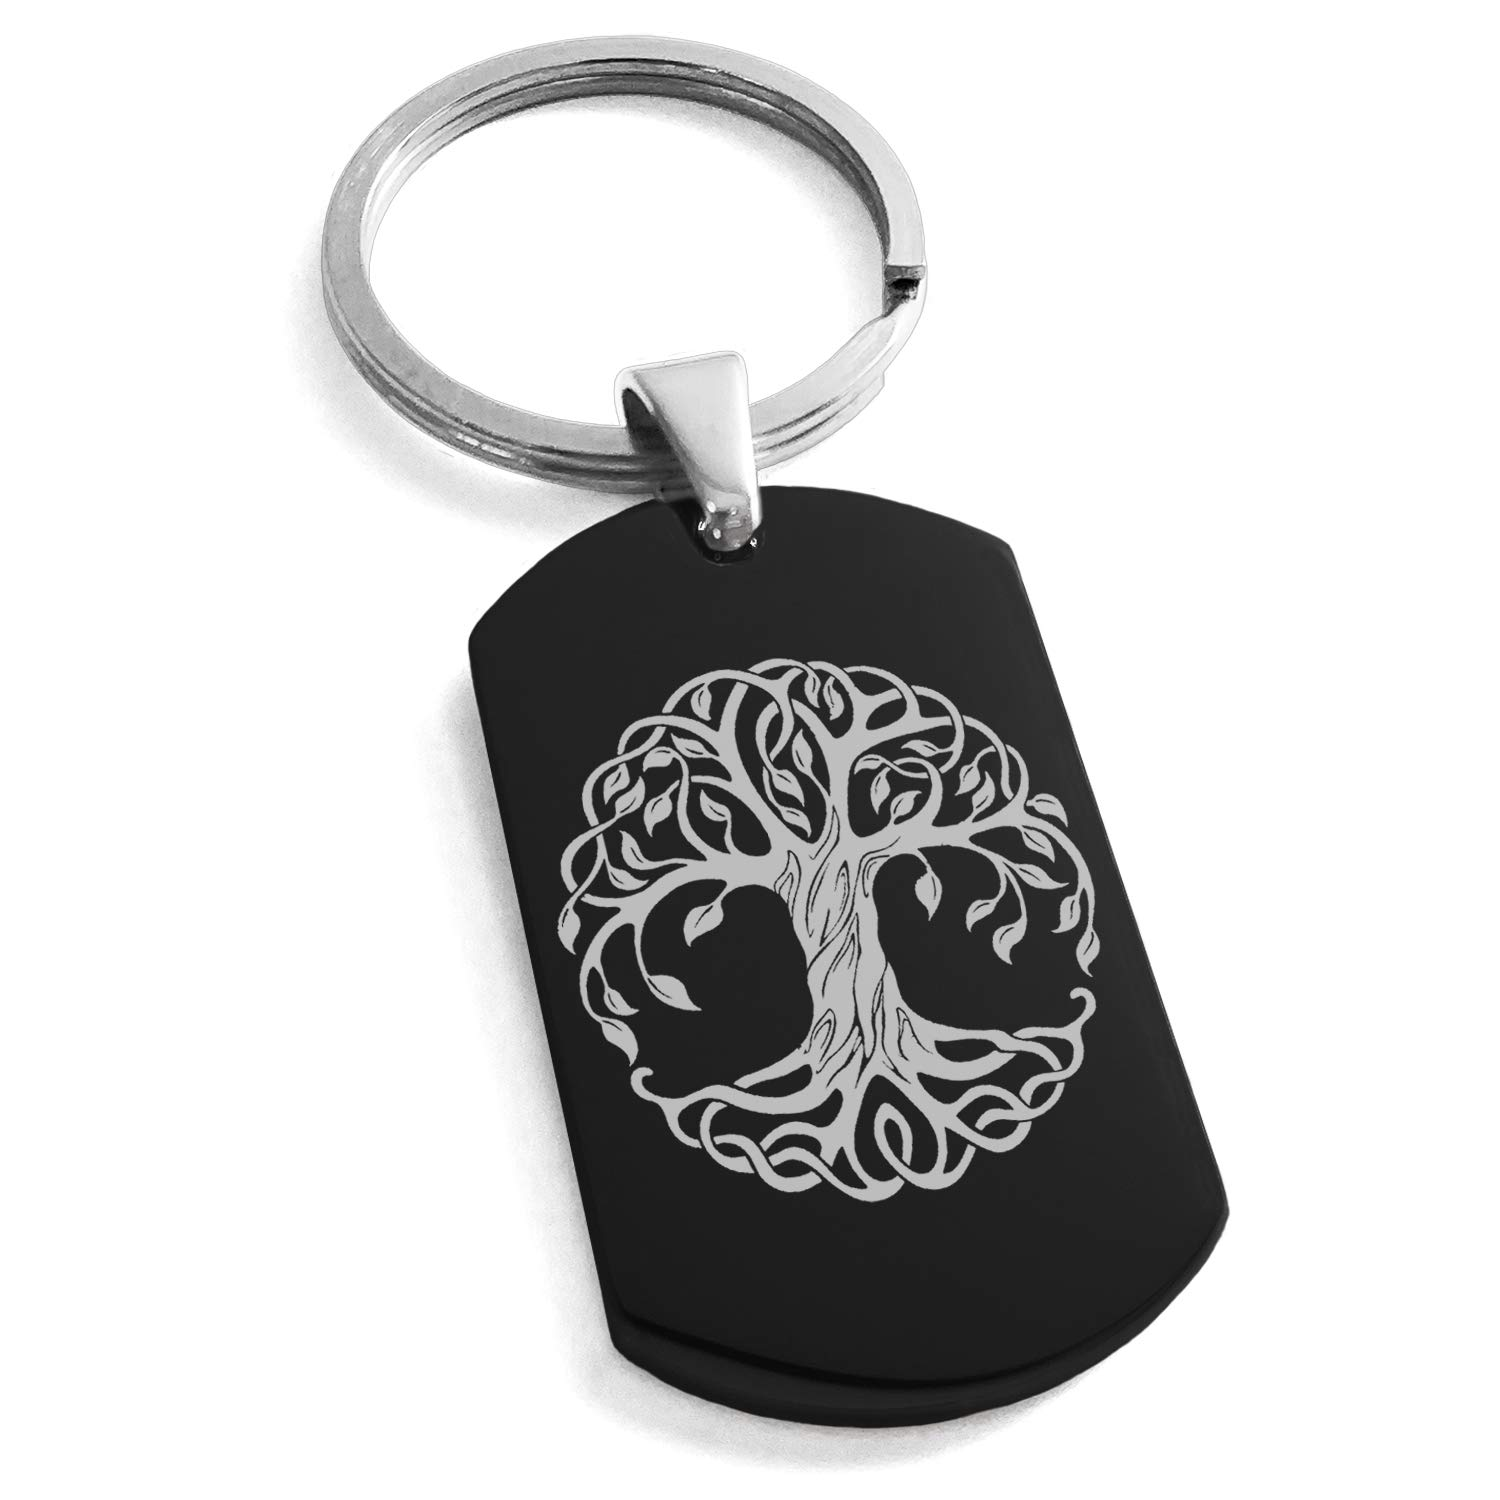 Tioneer Black Stainless Steel Celtic Knot Tree of Life Symbol Engraved Dog Tag Keychain Keyring